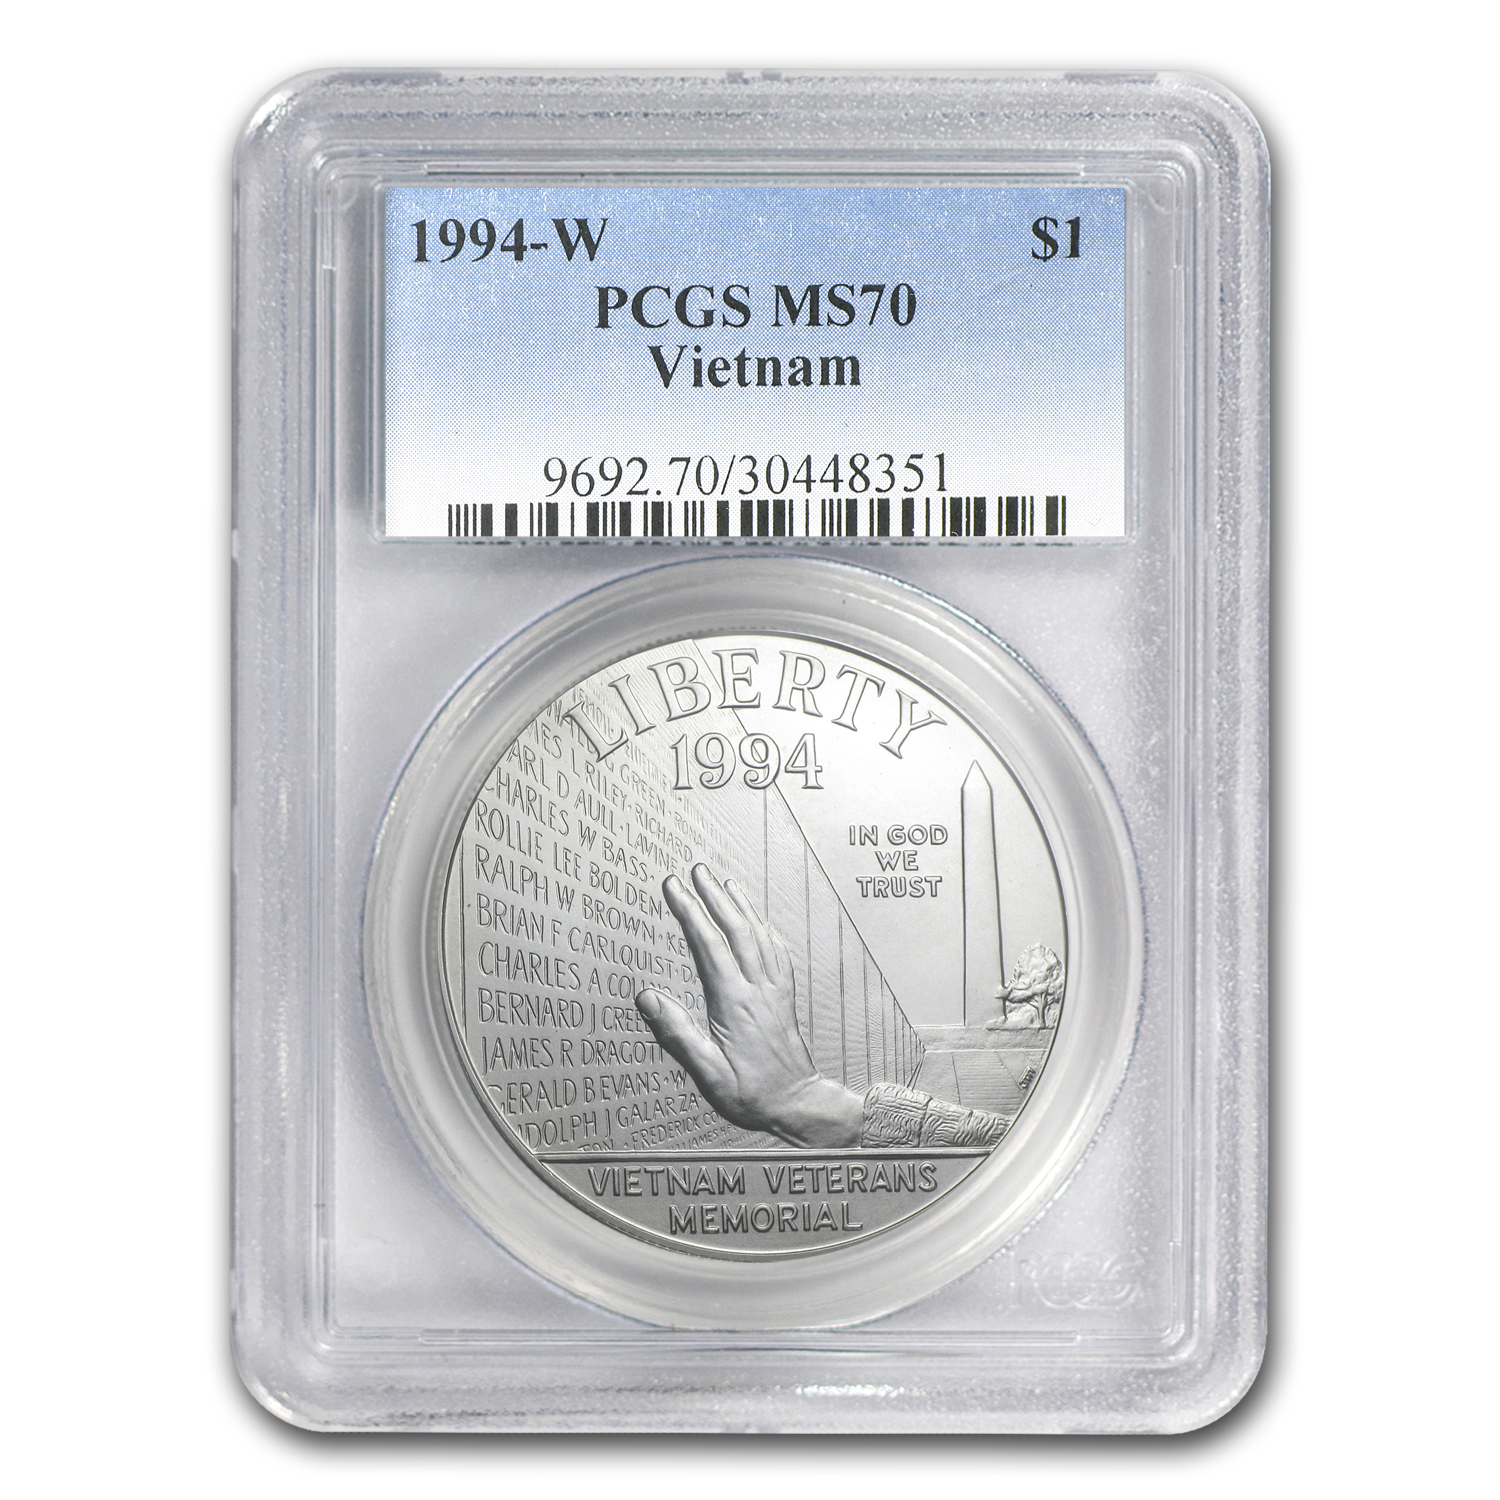 1994-W Vietnam Veterans Memorial $1 Silver Commem MS-70 PCGS